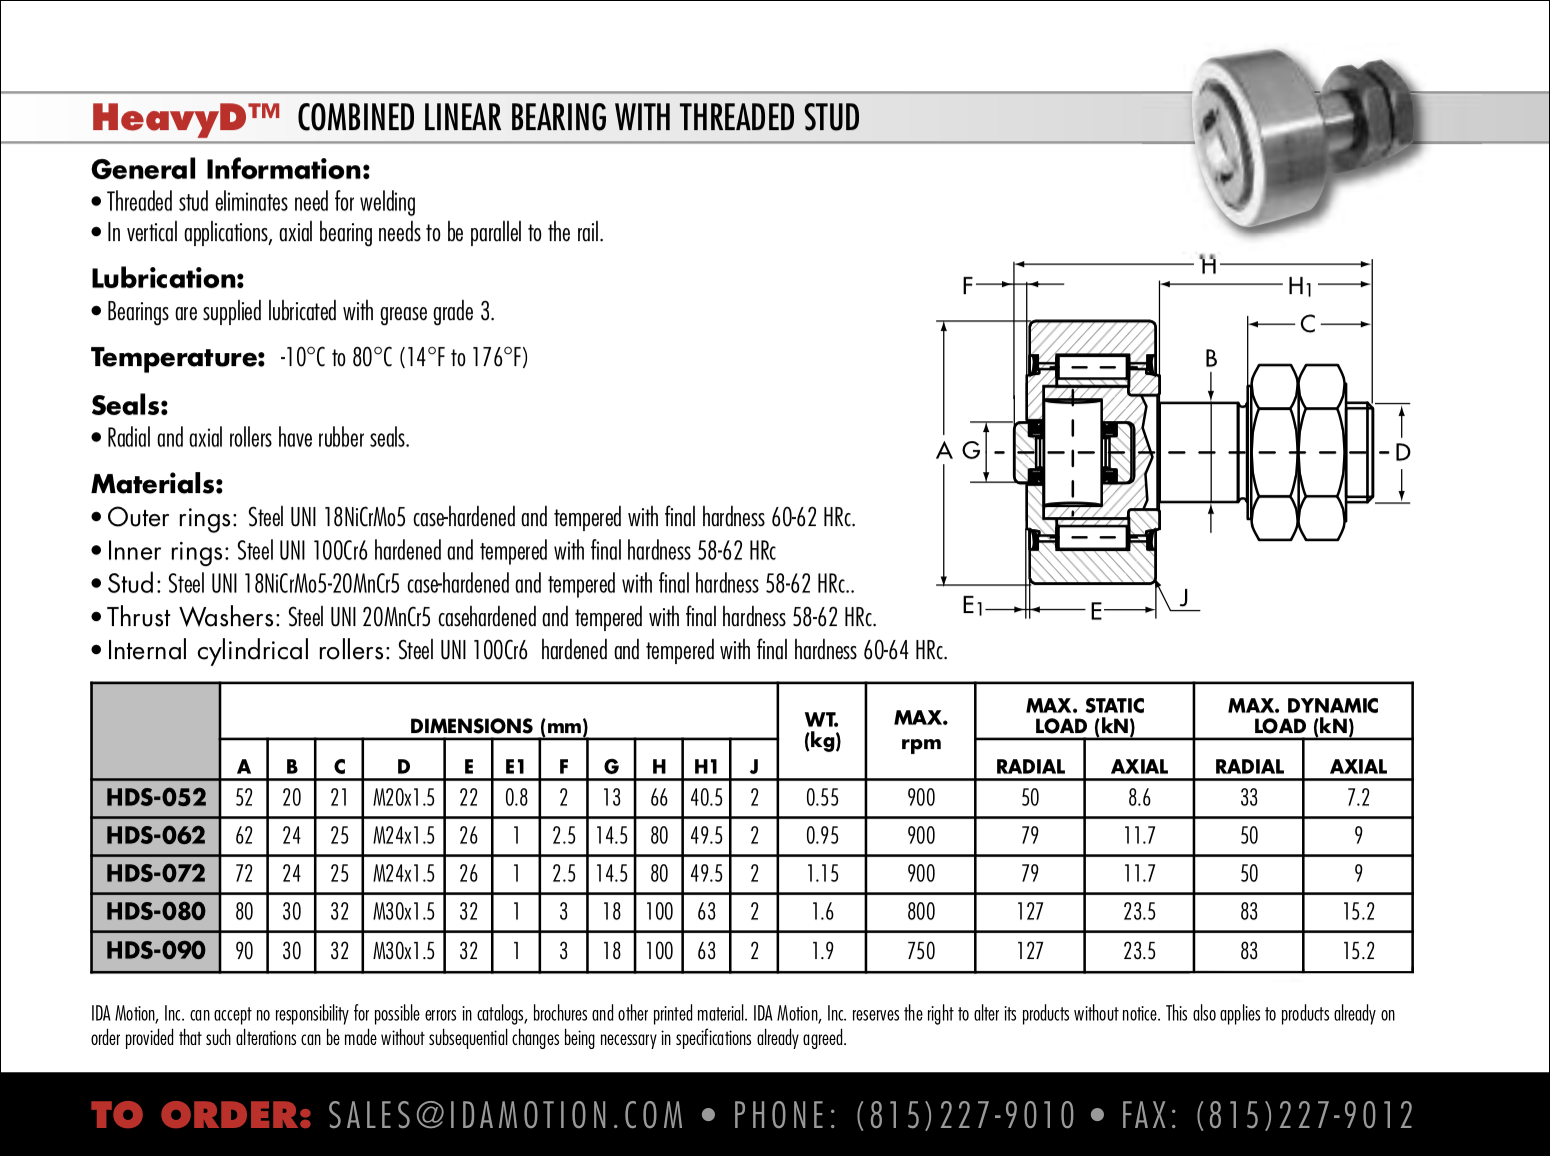 Combination Linear Bearing with Threaded Stud